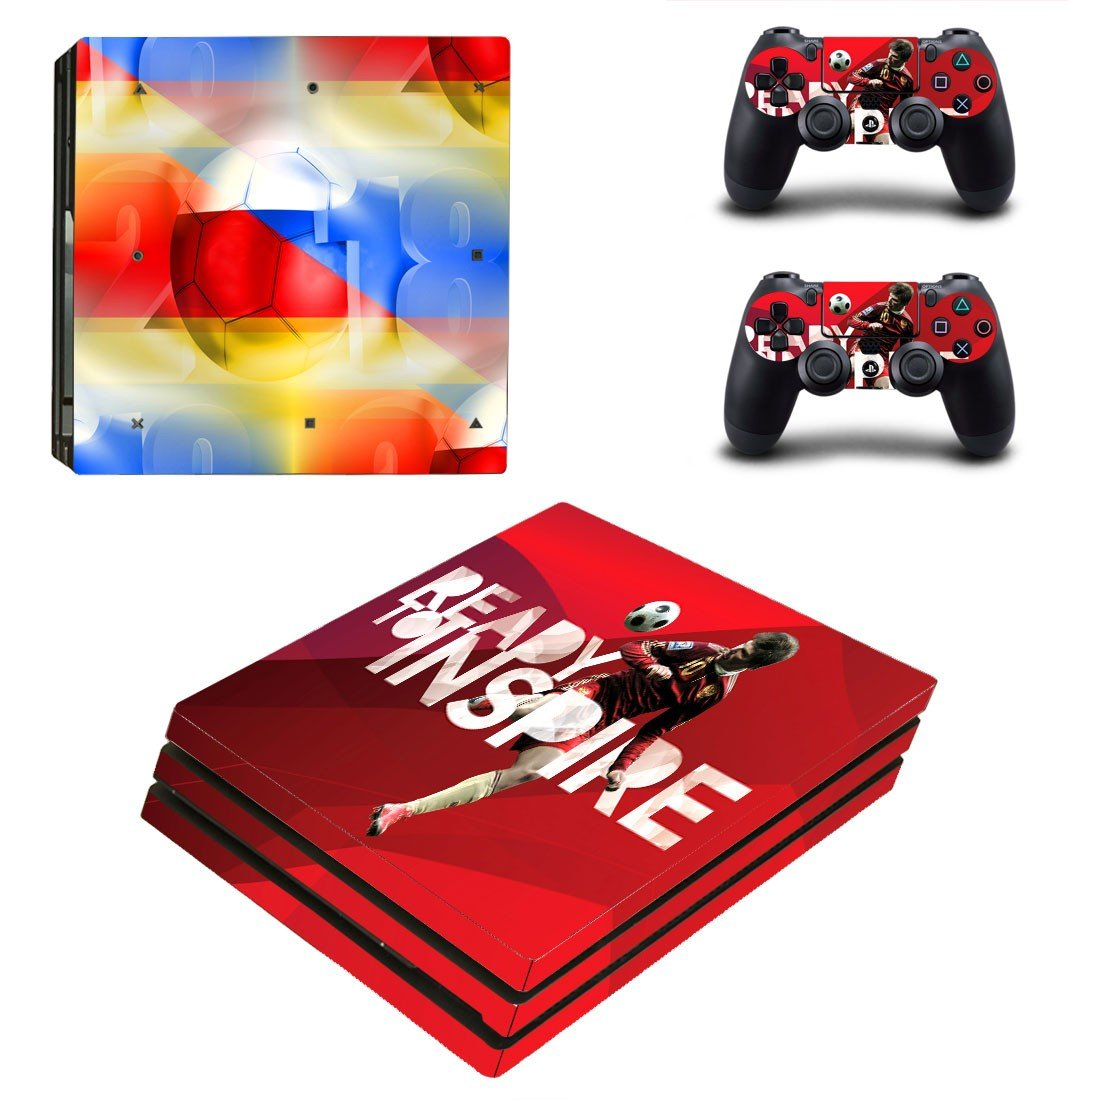 2018 FIFA World Cup decal skin sticker for PS4 Pro console and controllers